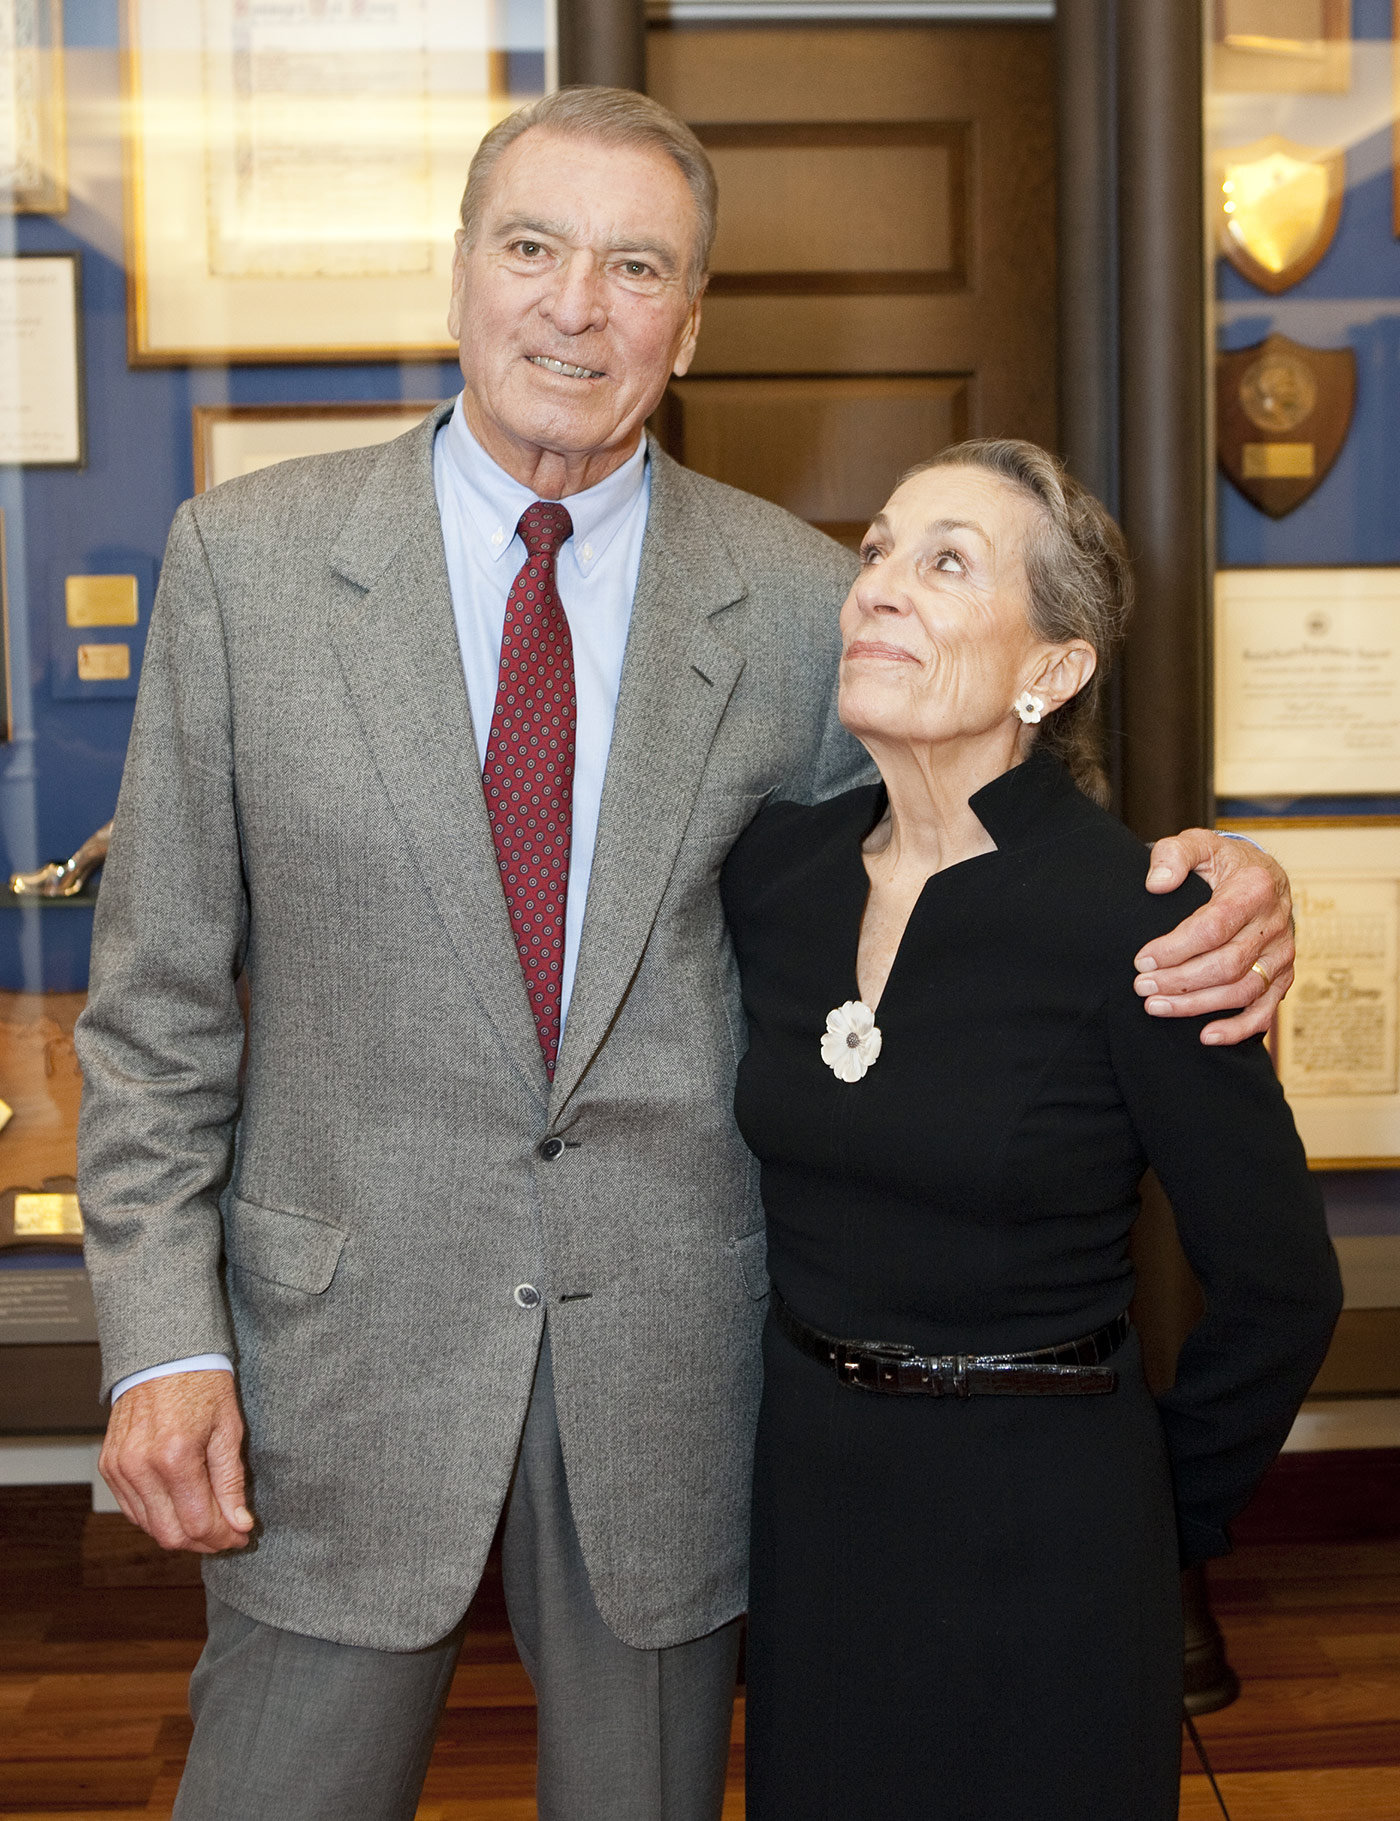 Ron MIller and Diane Disney-Miller at the opening of The Walt Disney Family Museum in 2009. Photo courtesy of The Walt Disney Family Museum.